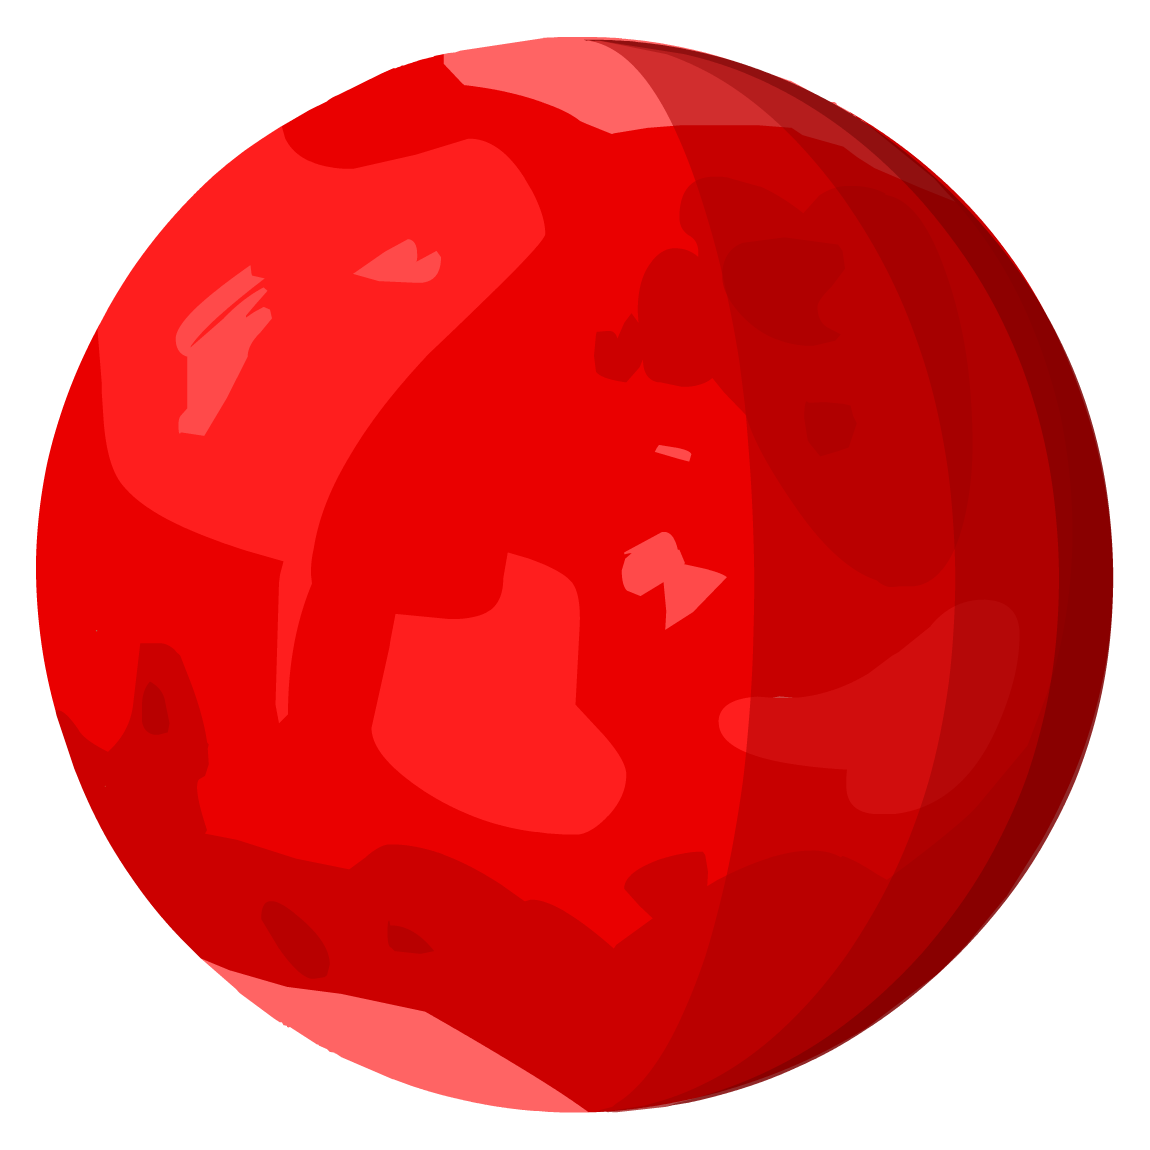 Marbles clipart planet neptune. Image beta team solar